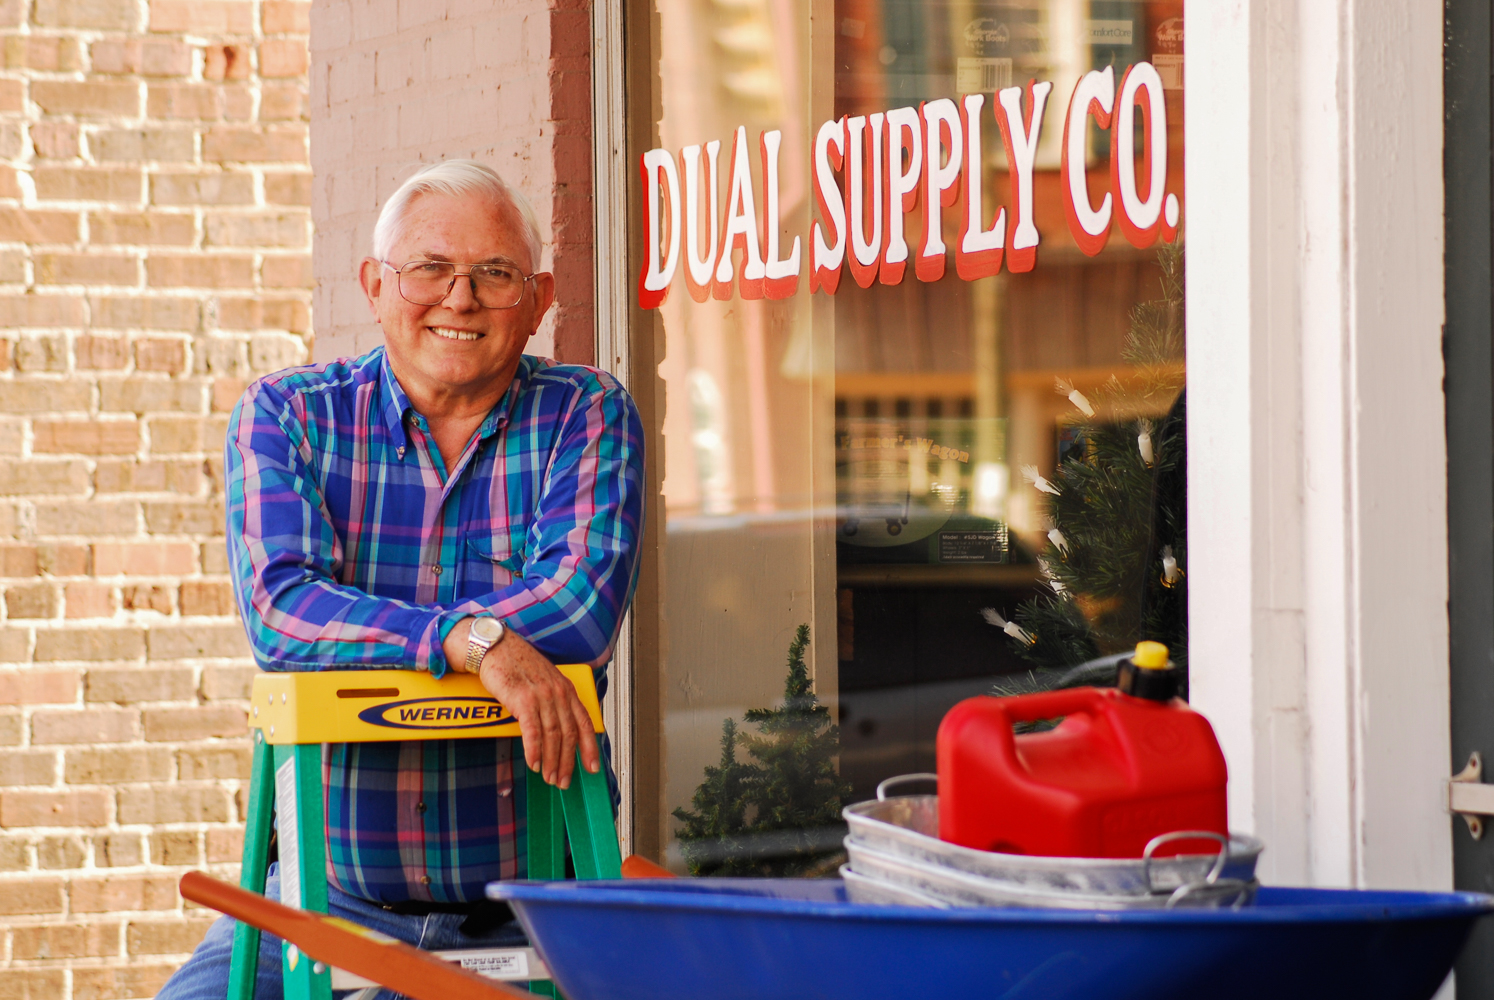 Wesley Woods is the owner and proprietor of Dual Supply, a hardware store in Hillsborough, North Carolina.